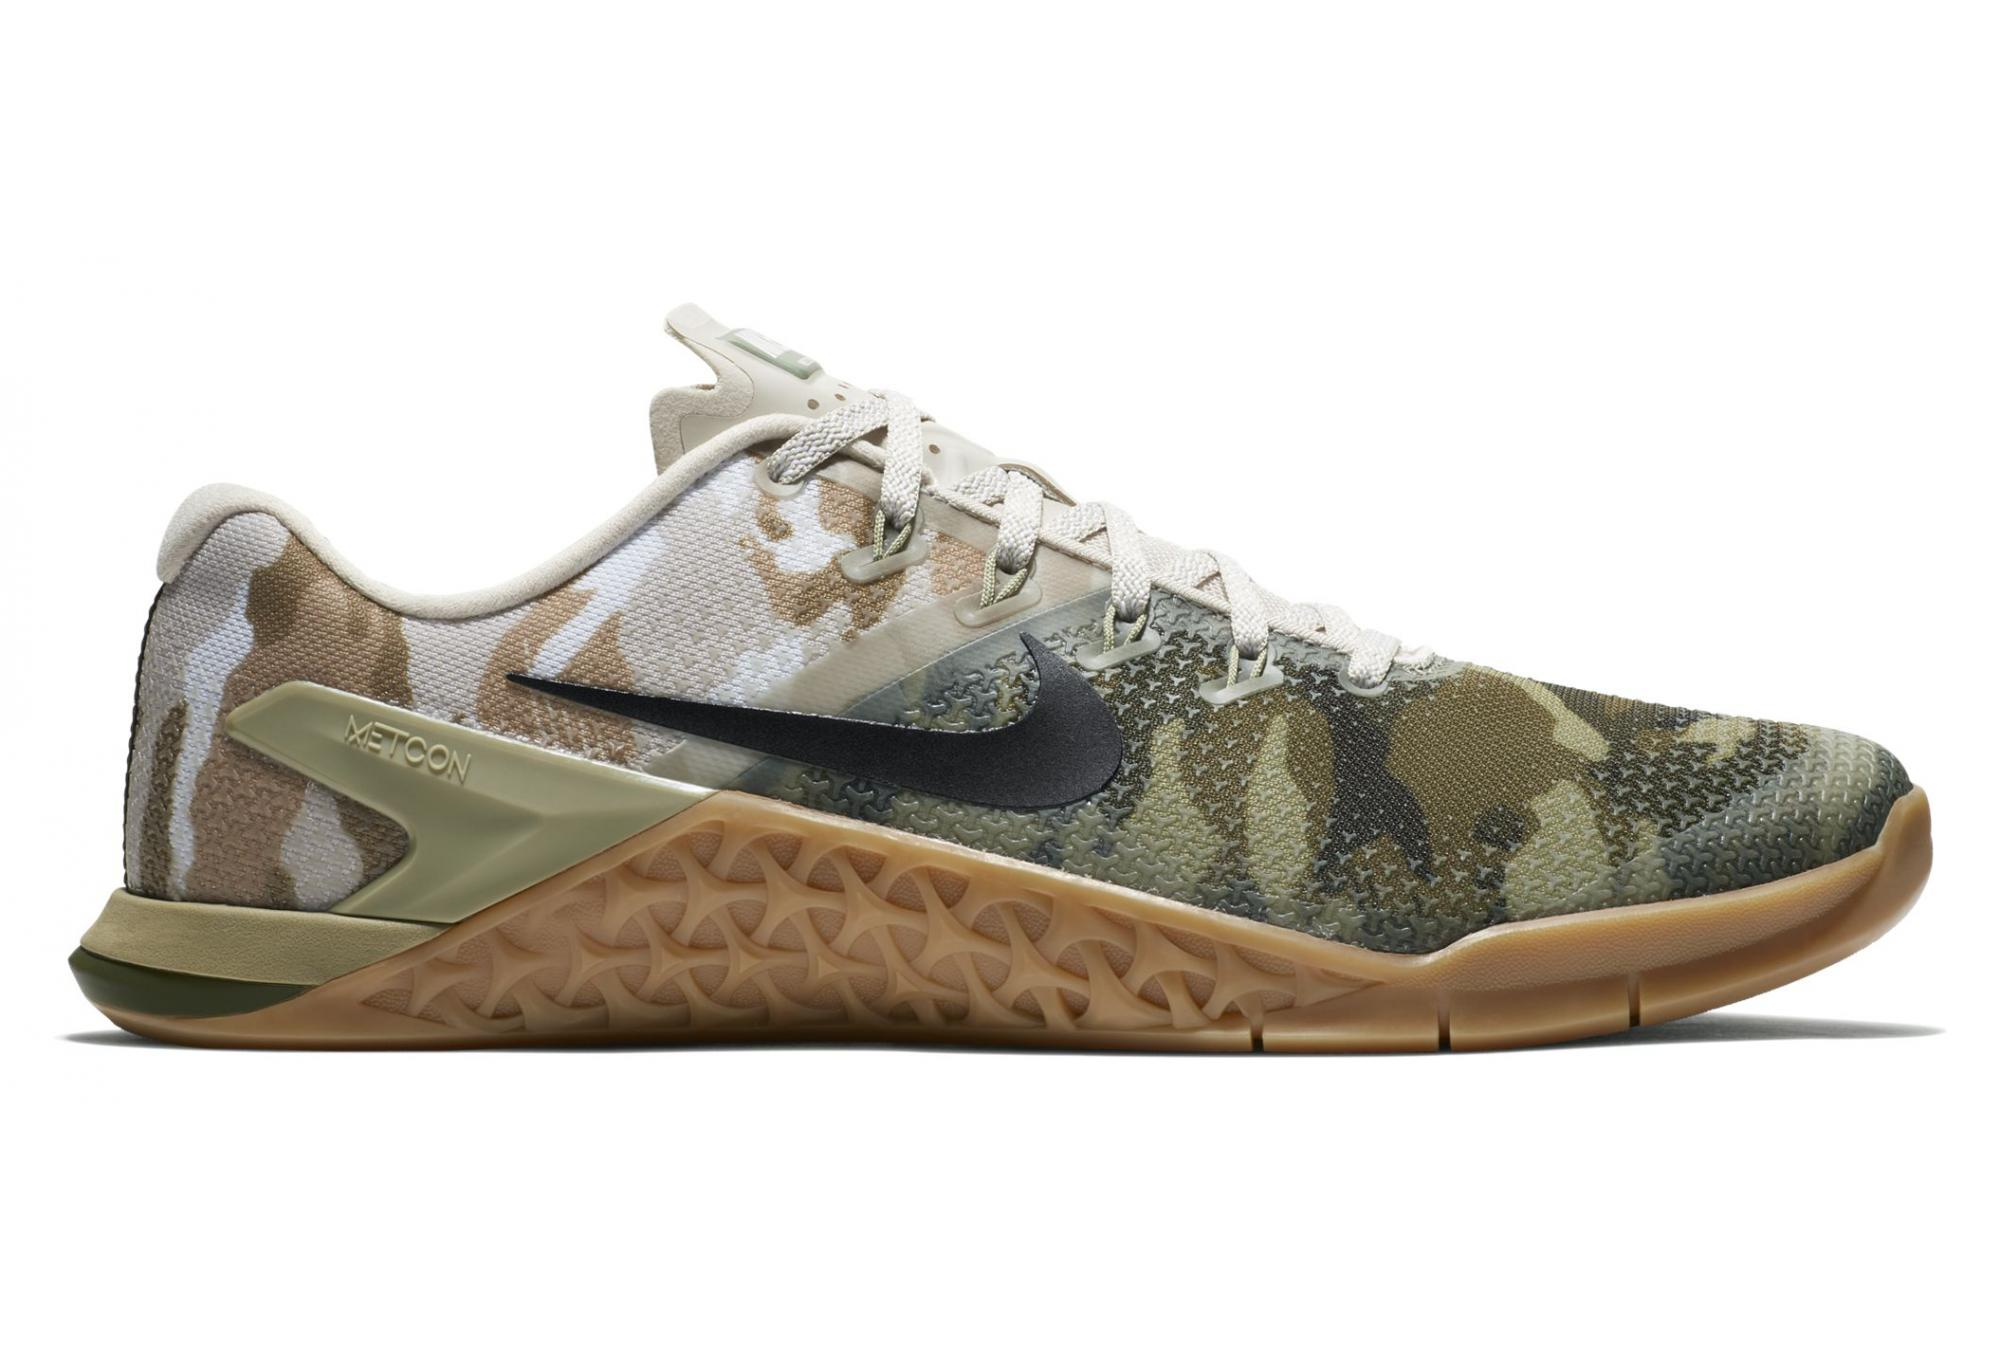 257210760cd Nike Shoes Metcon 4 Camo Men